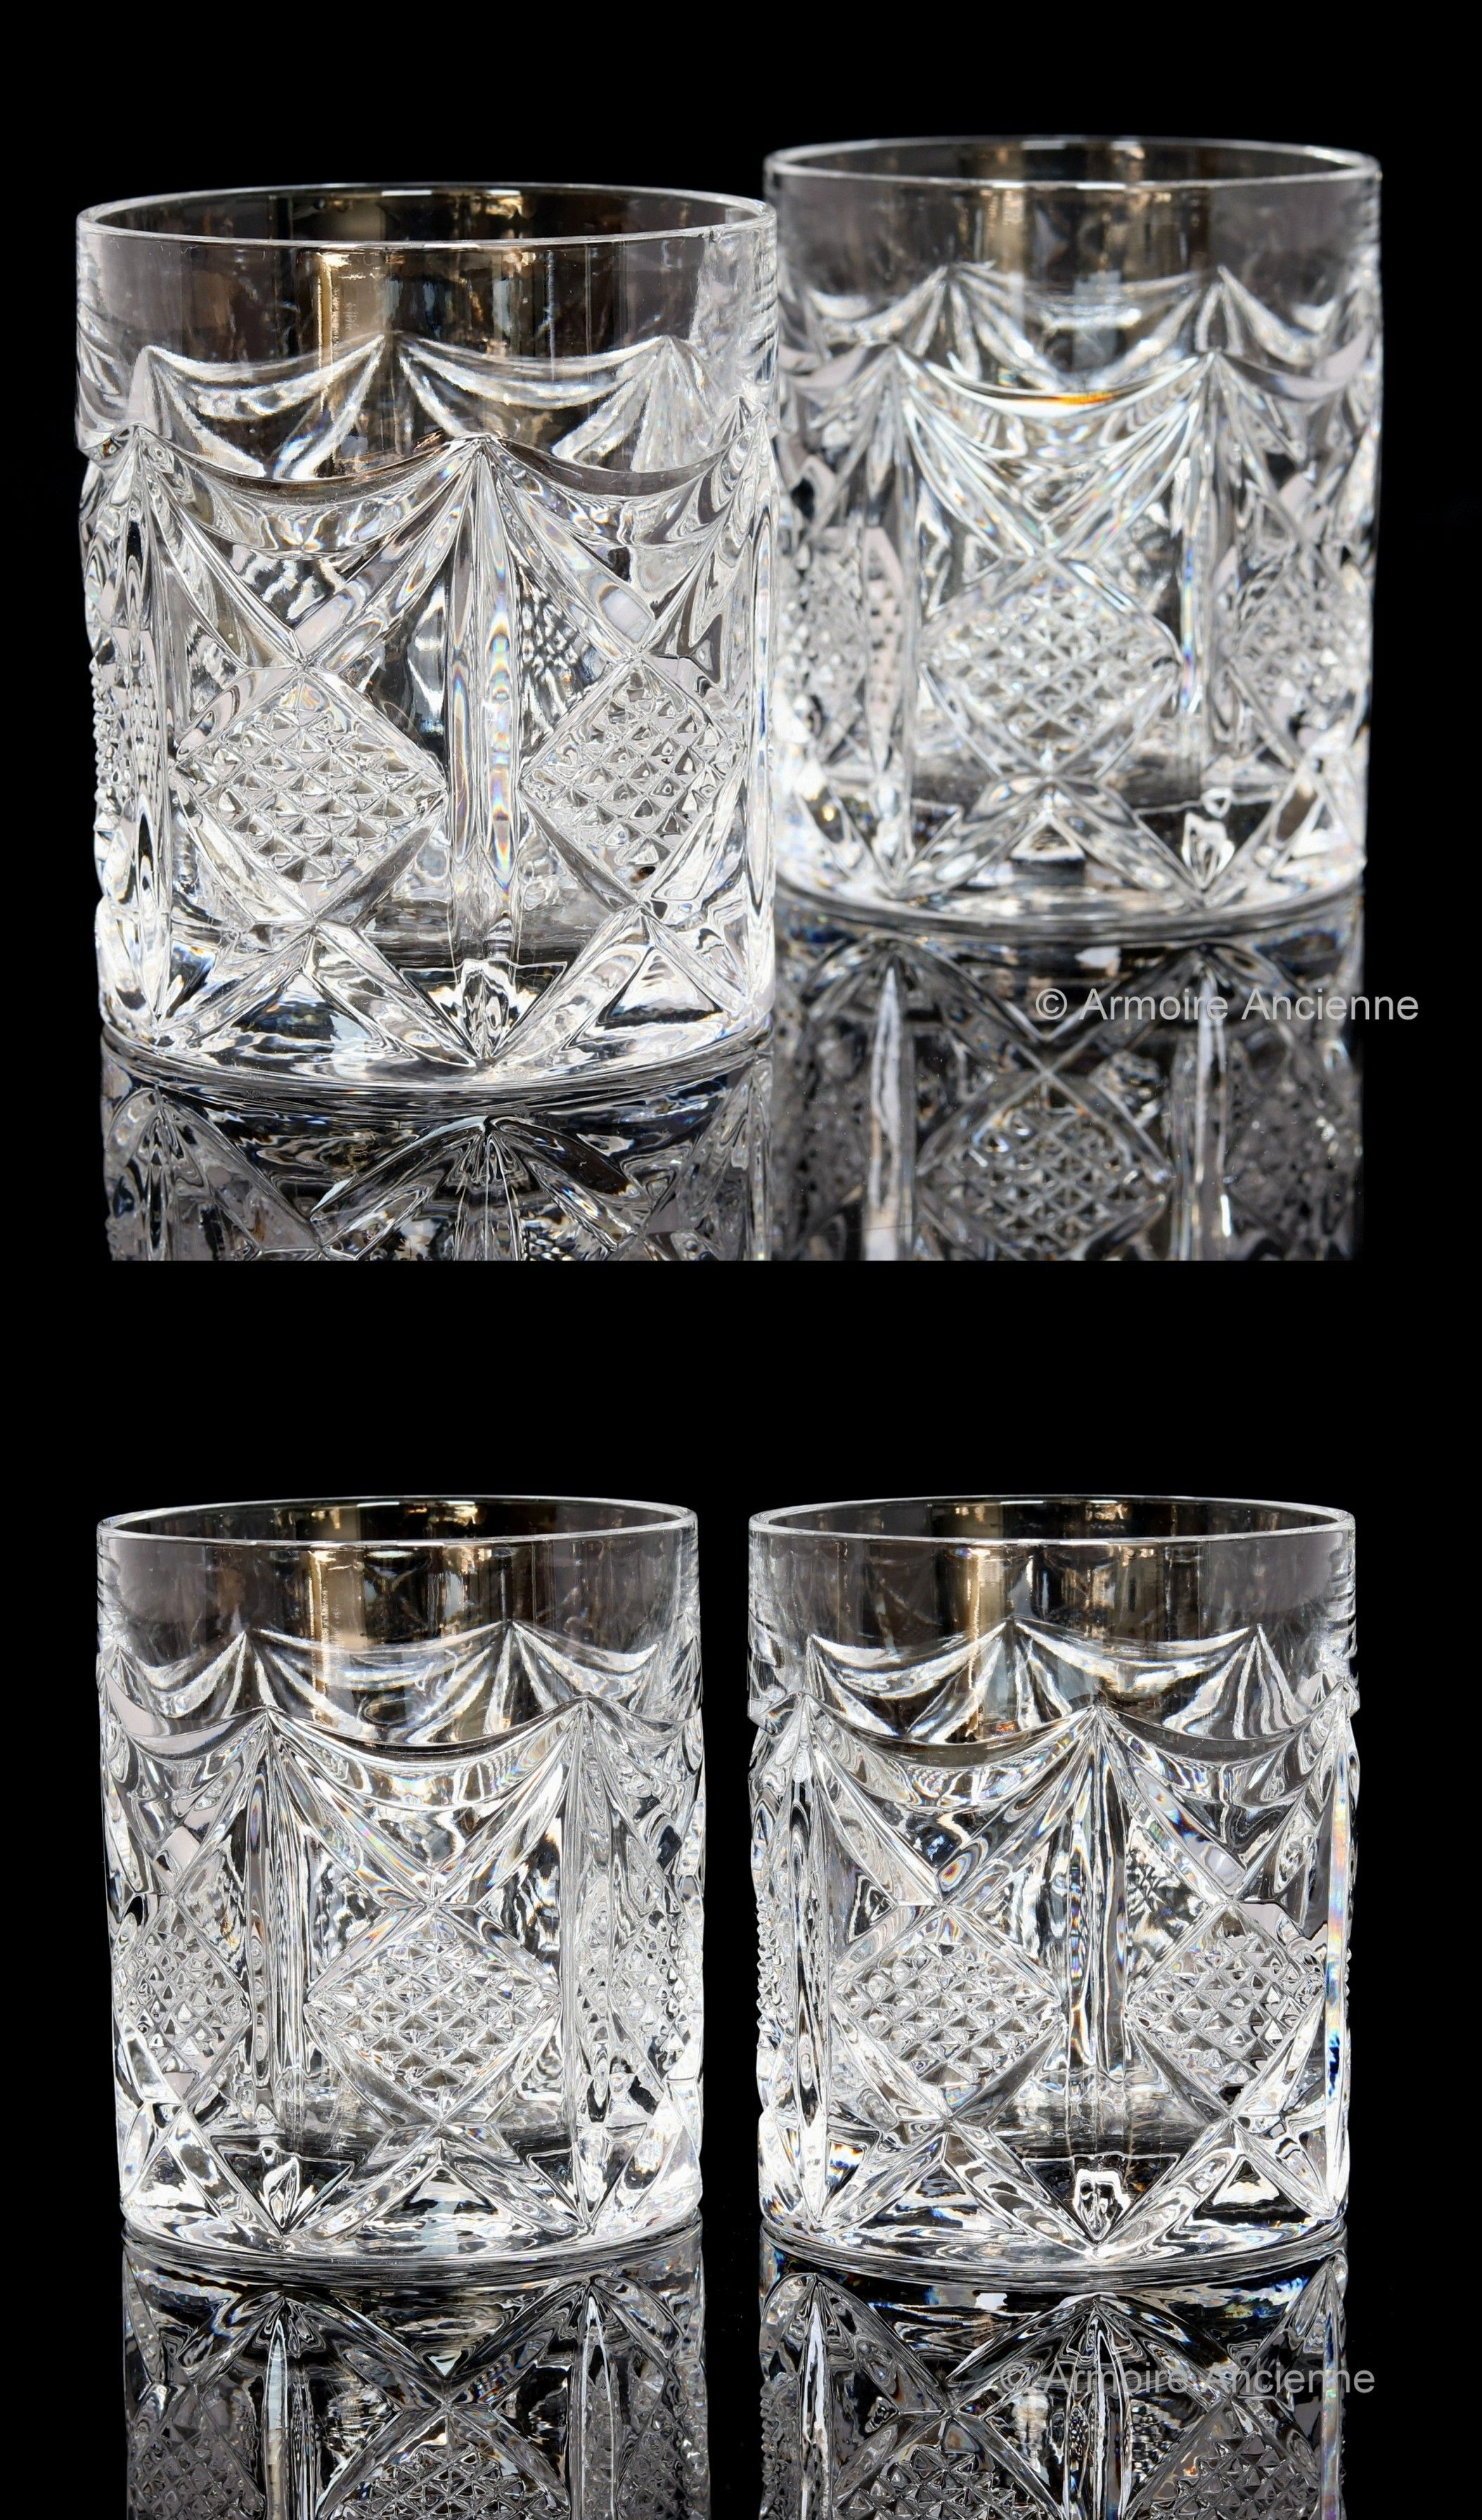 2x Crystal Whiskey Glasses Whisky Low Ball Glasses Old Fashioned Tumblers Mid Century Bar Cart Crystal Whiskey Glasses Whiskey Glasses Lowball Glasses